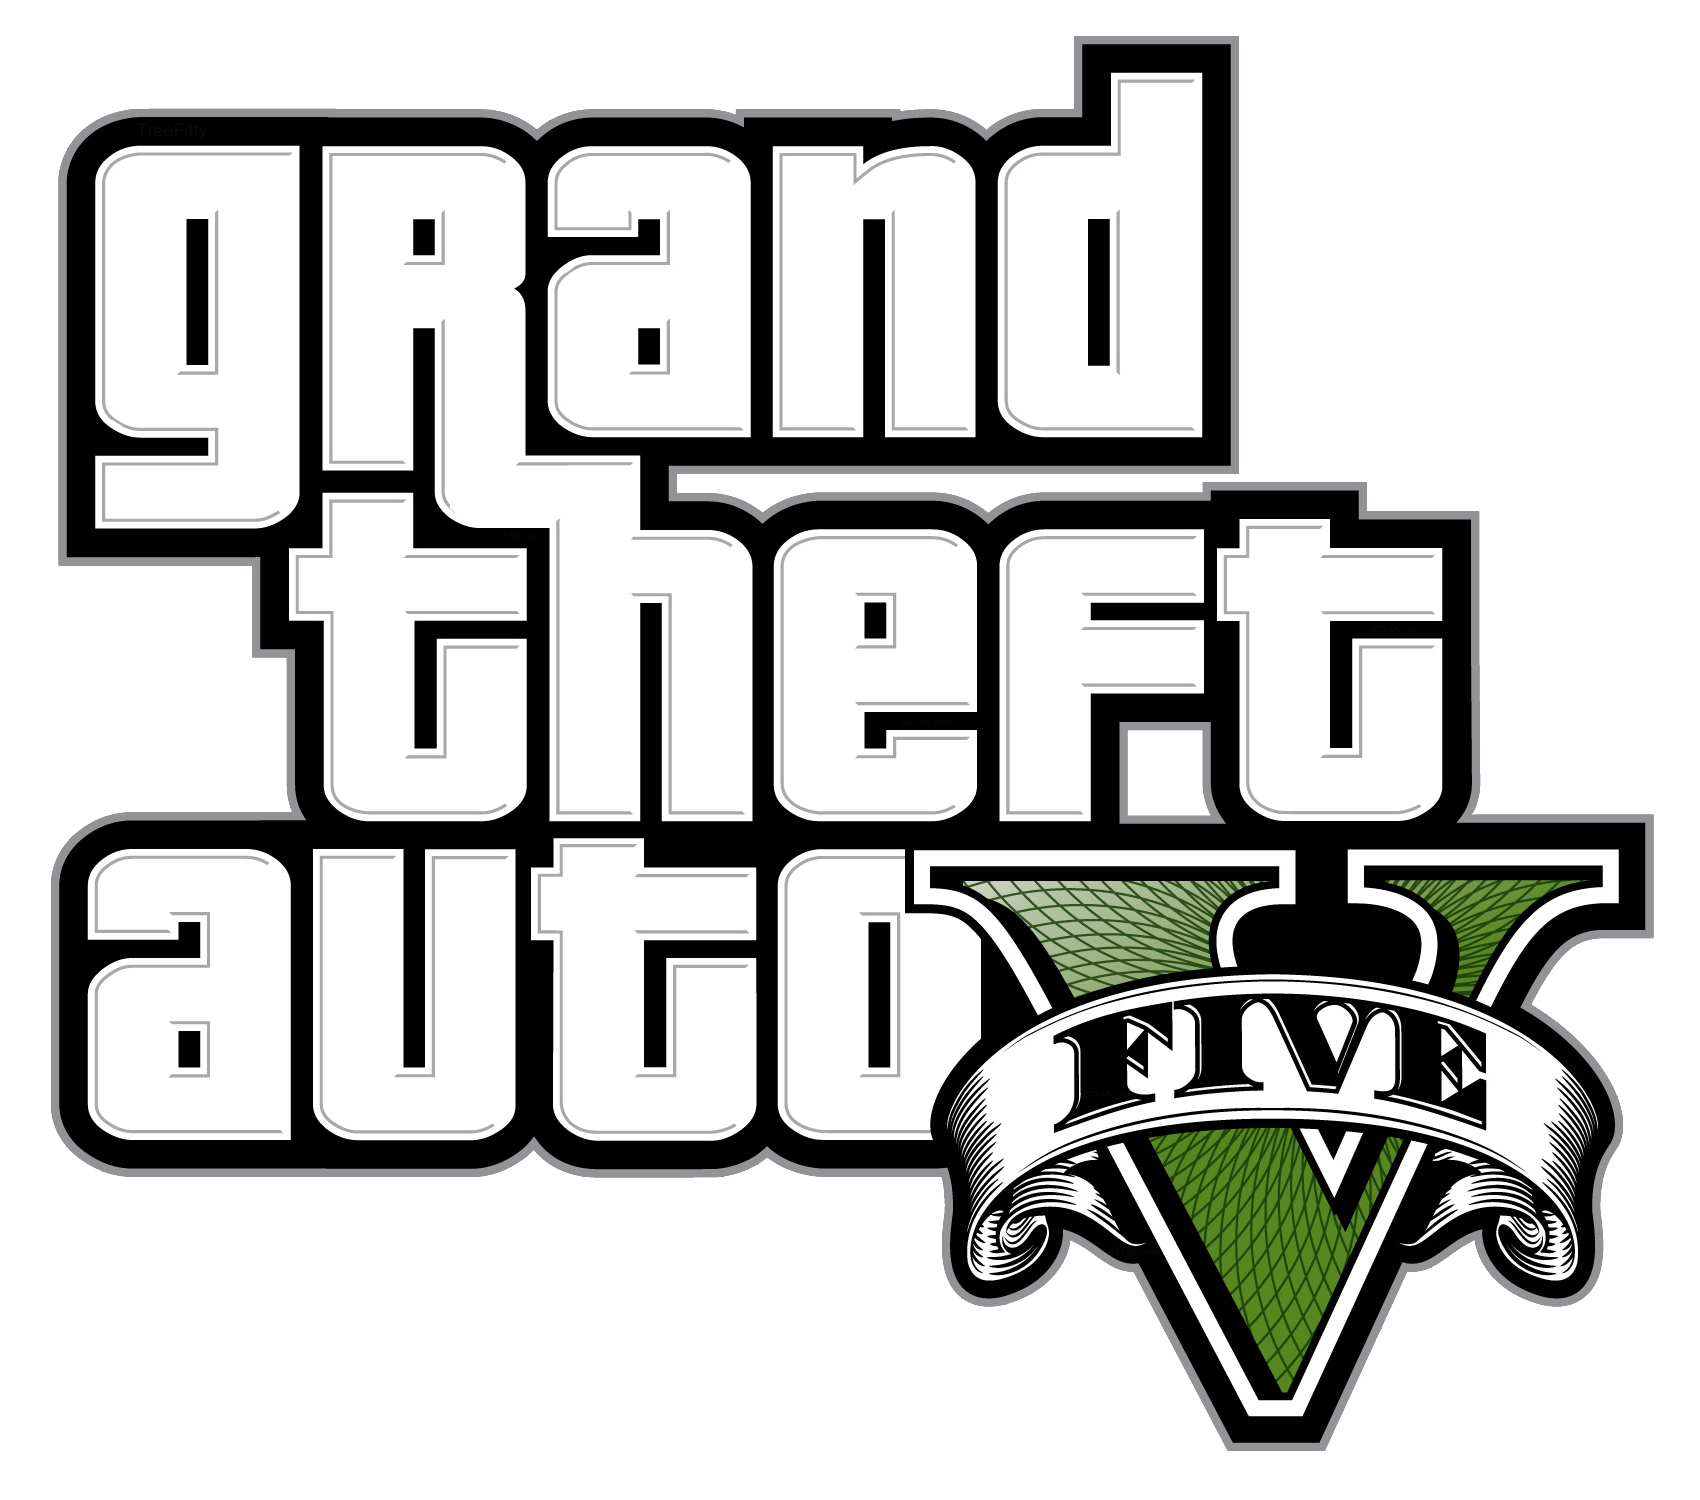 Logos transparent gta 5. Logo download